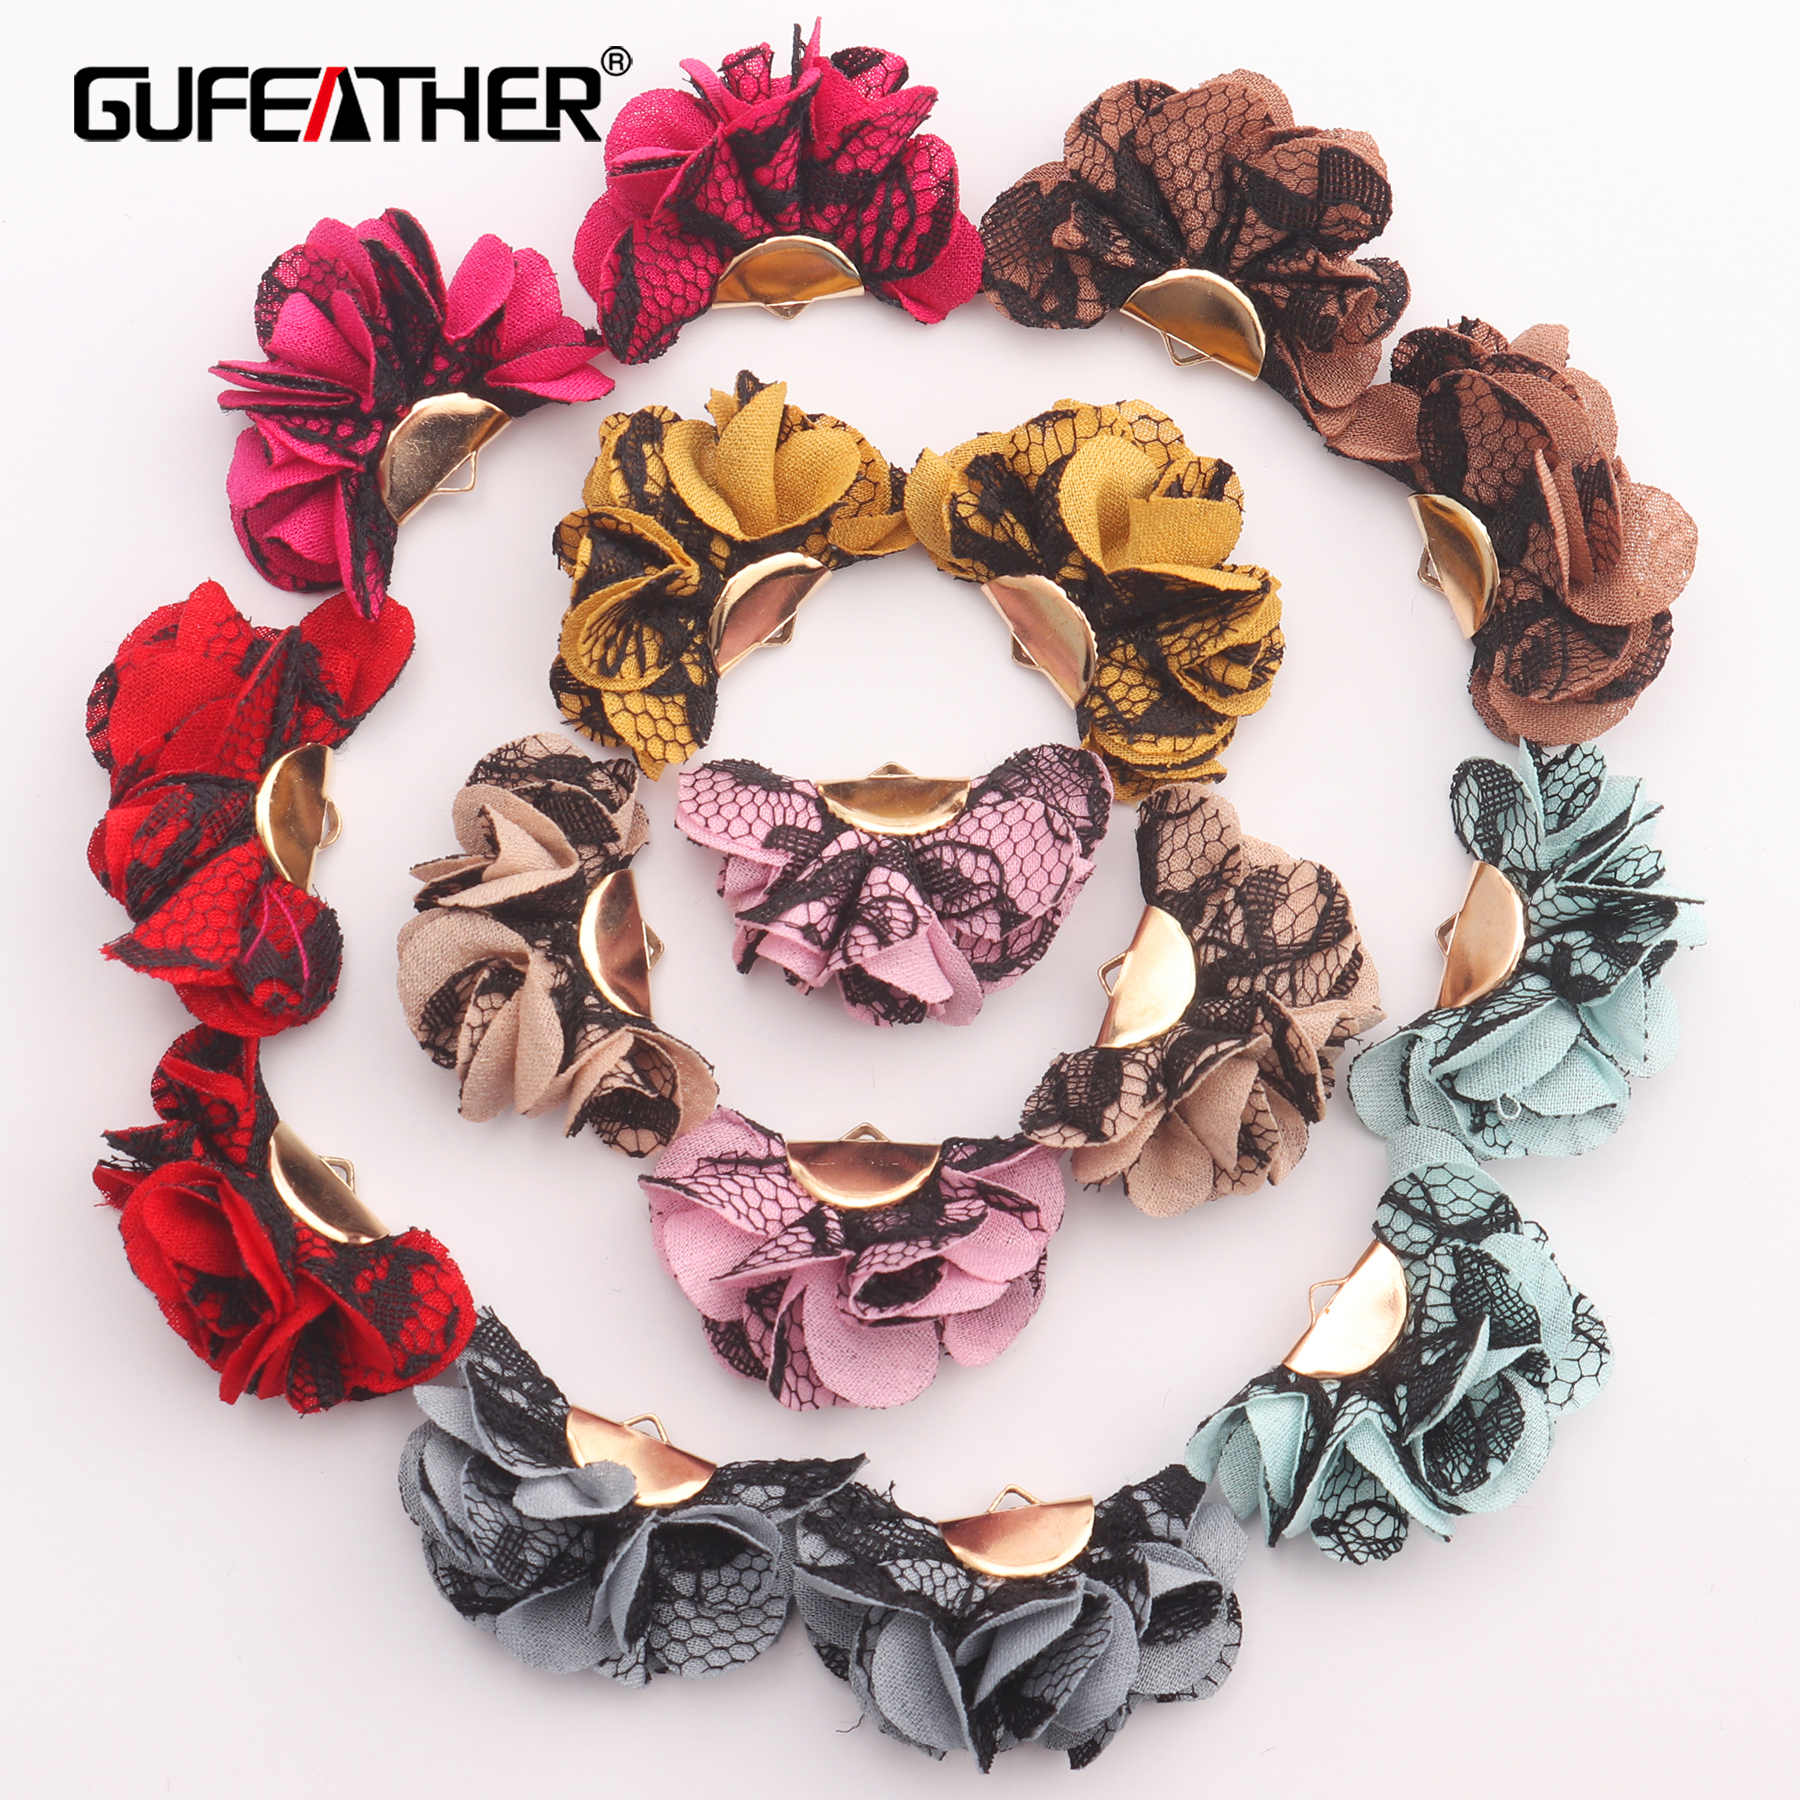 GUFEATHER F133,earring Accessories,charms,jewelry Findings,flower Jewelry Decoration,diy Earrings,jewelry Making,10pcs/lot